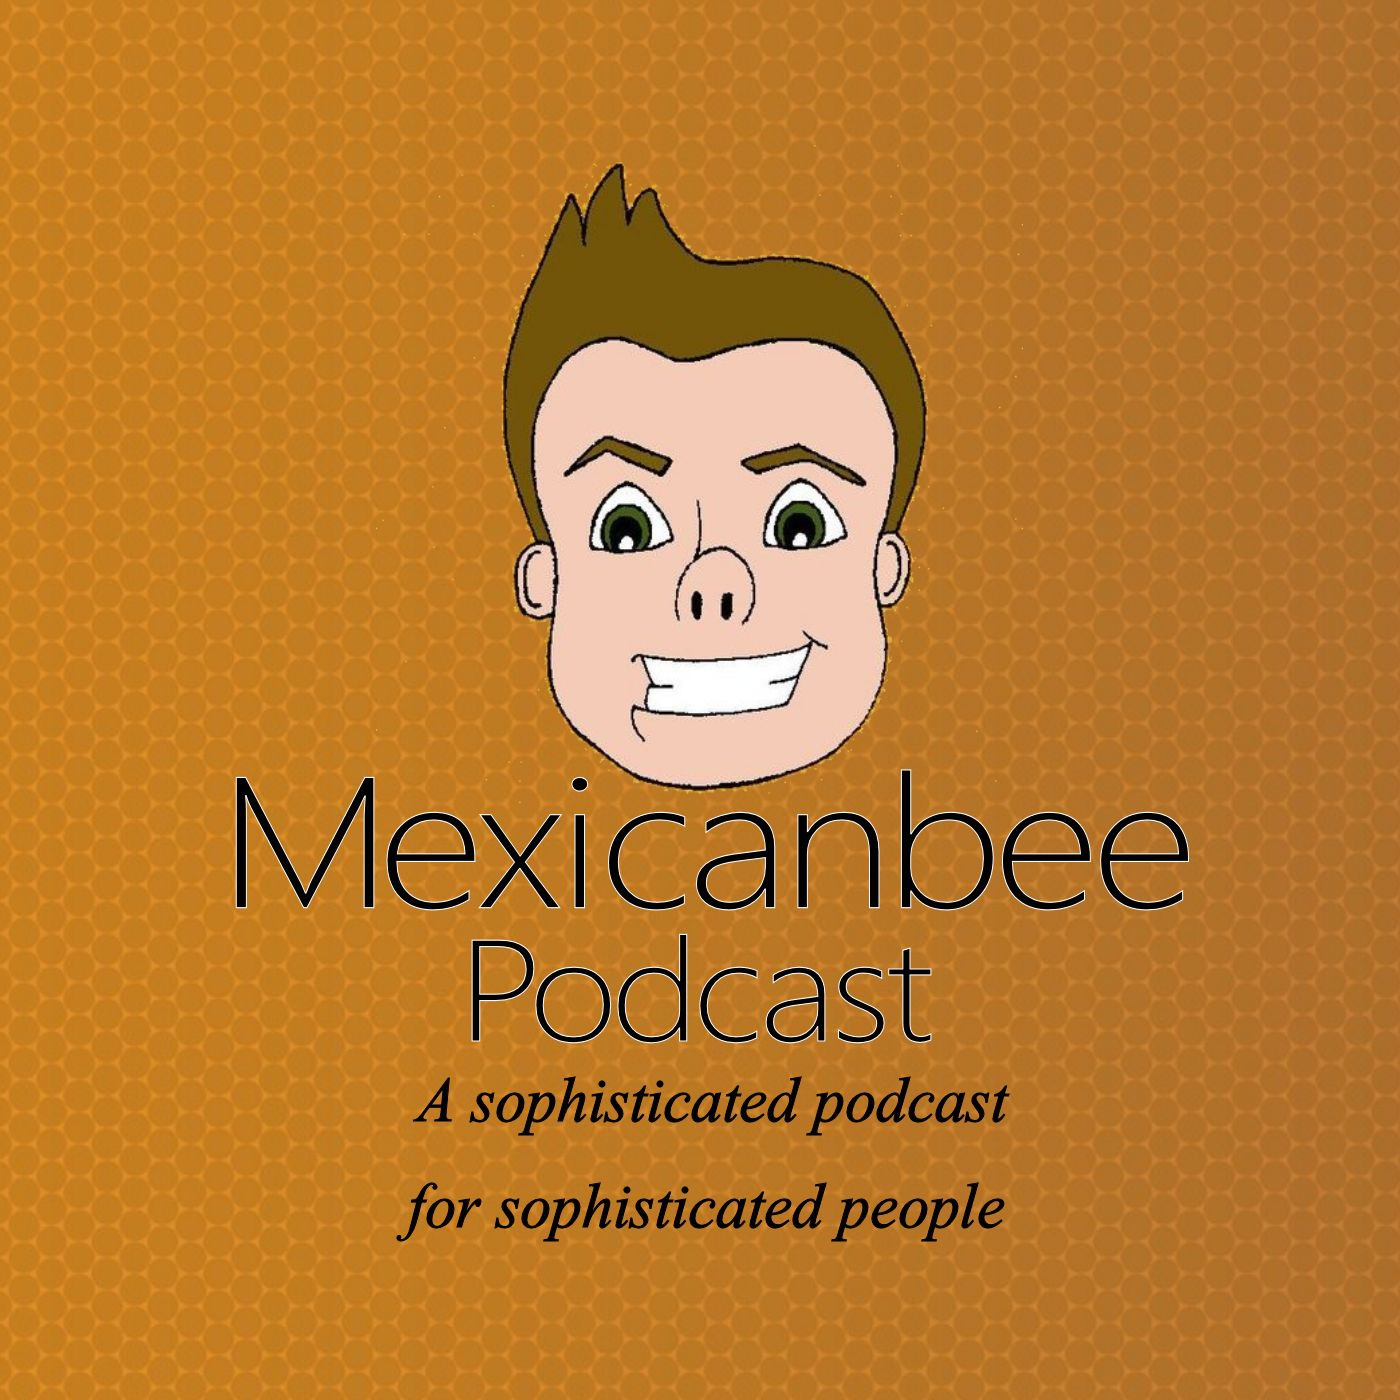 MexicanbeePodcast